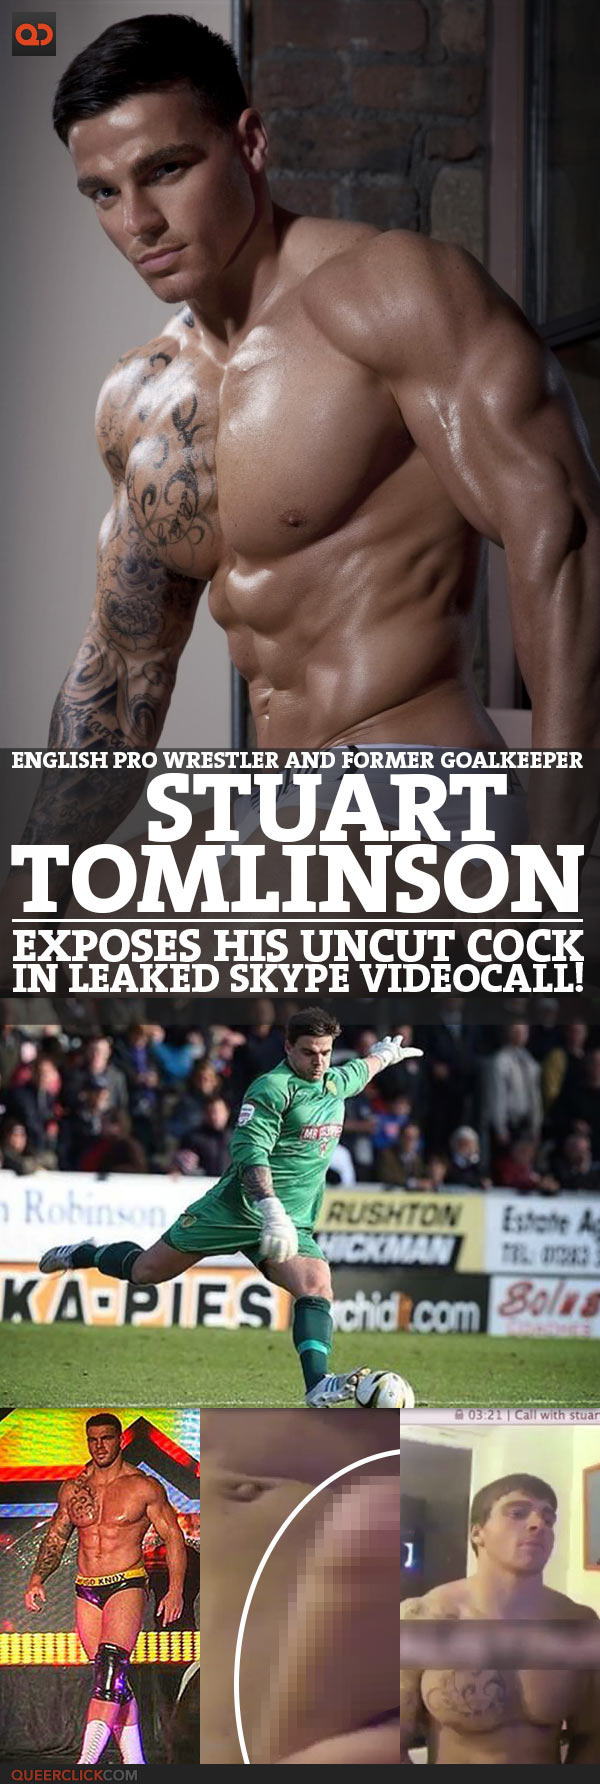 Stuart Tomlinson, English Pro Wrestler and Former Goalkeeper, Exposes His Uncut Cock In Leaked Skype Videocall!